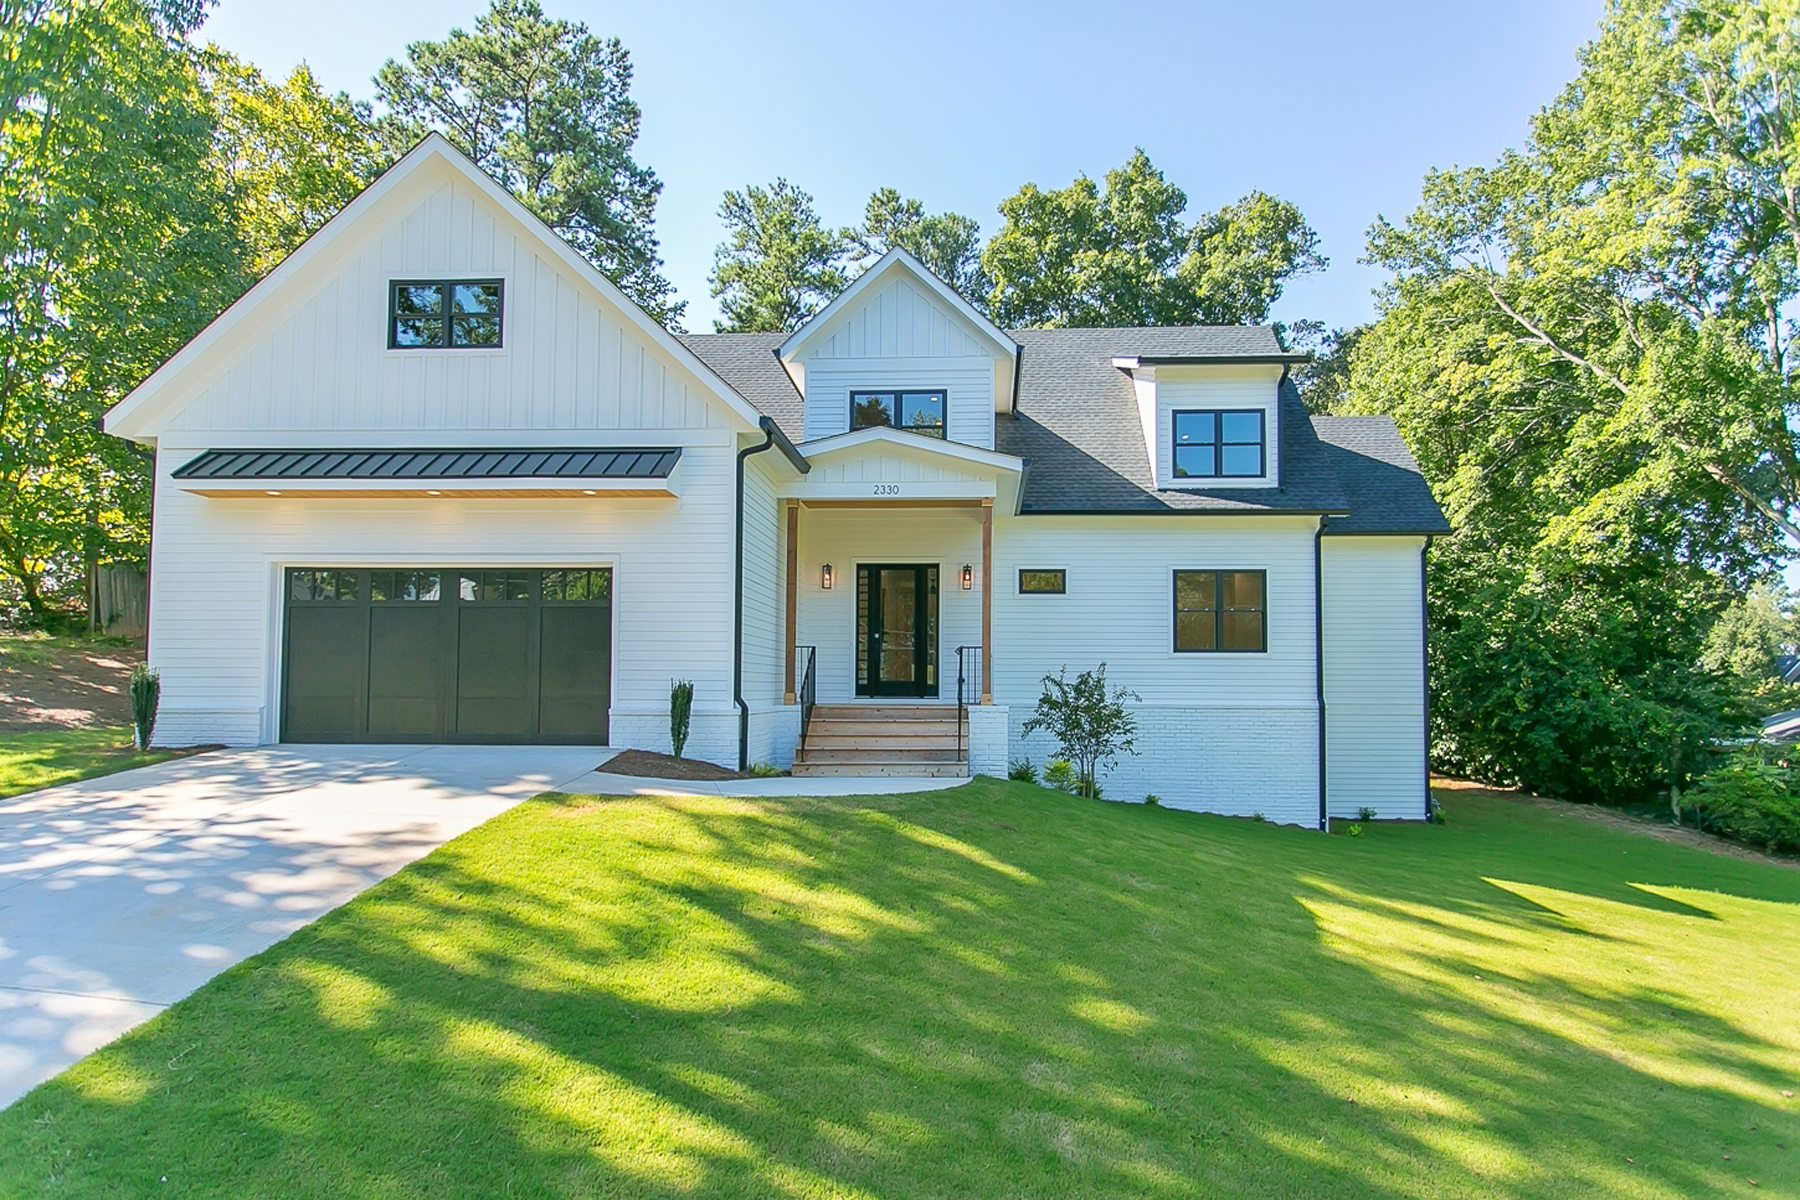 Single Family Homes for Sale at New Construction Modern Farmhouse Near the Heart of Vinings 2330 Hills Lane Drive SE Smyrna, Georgia 30080 United States